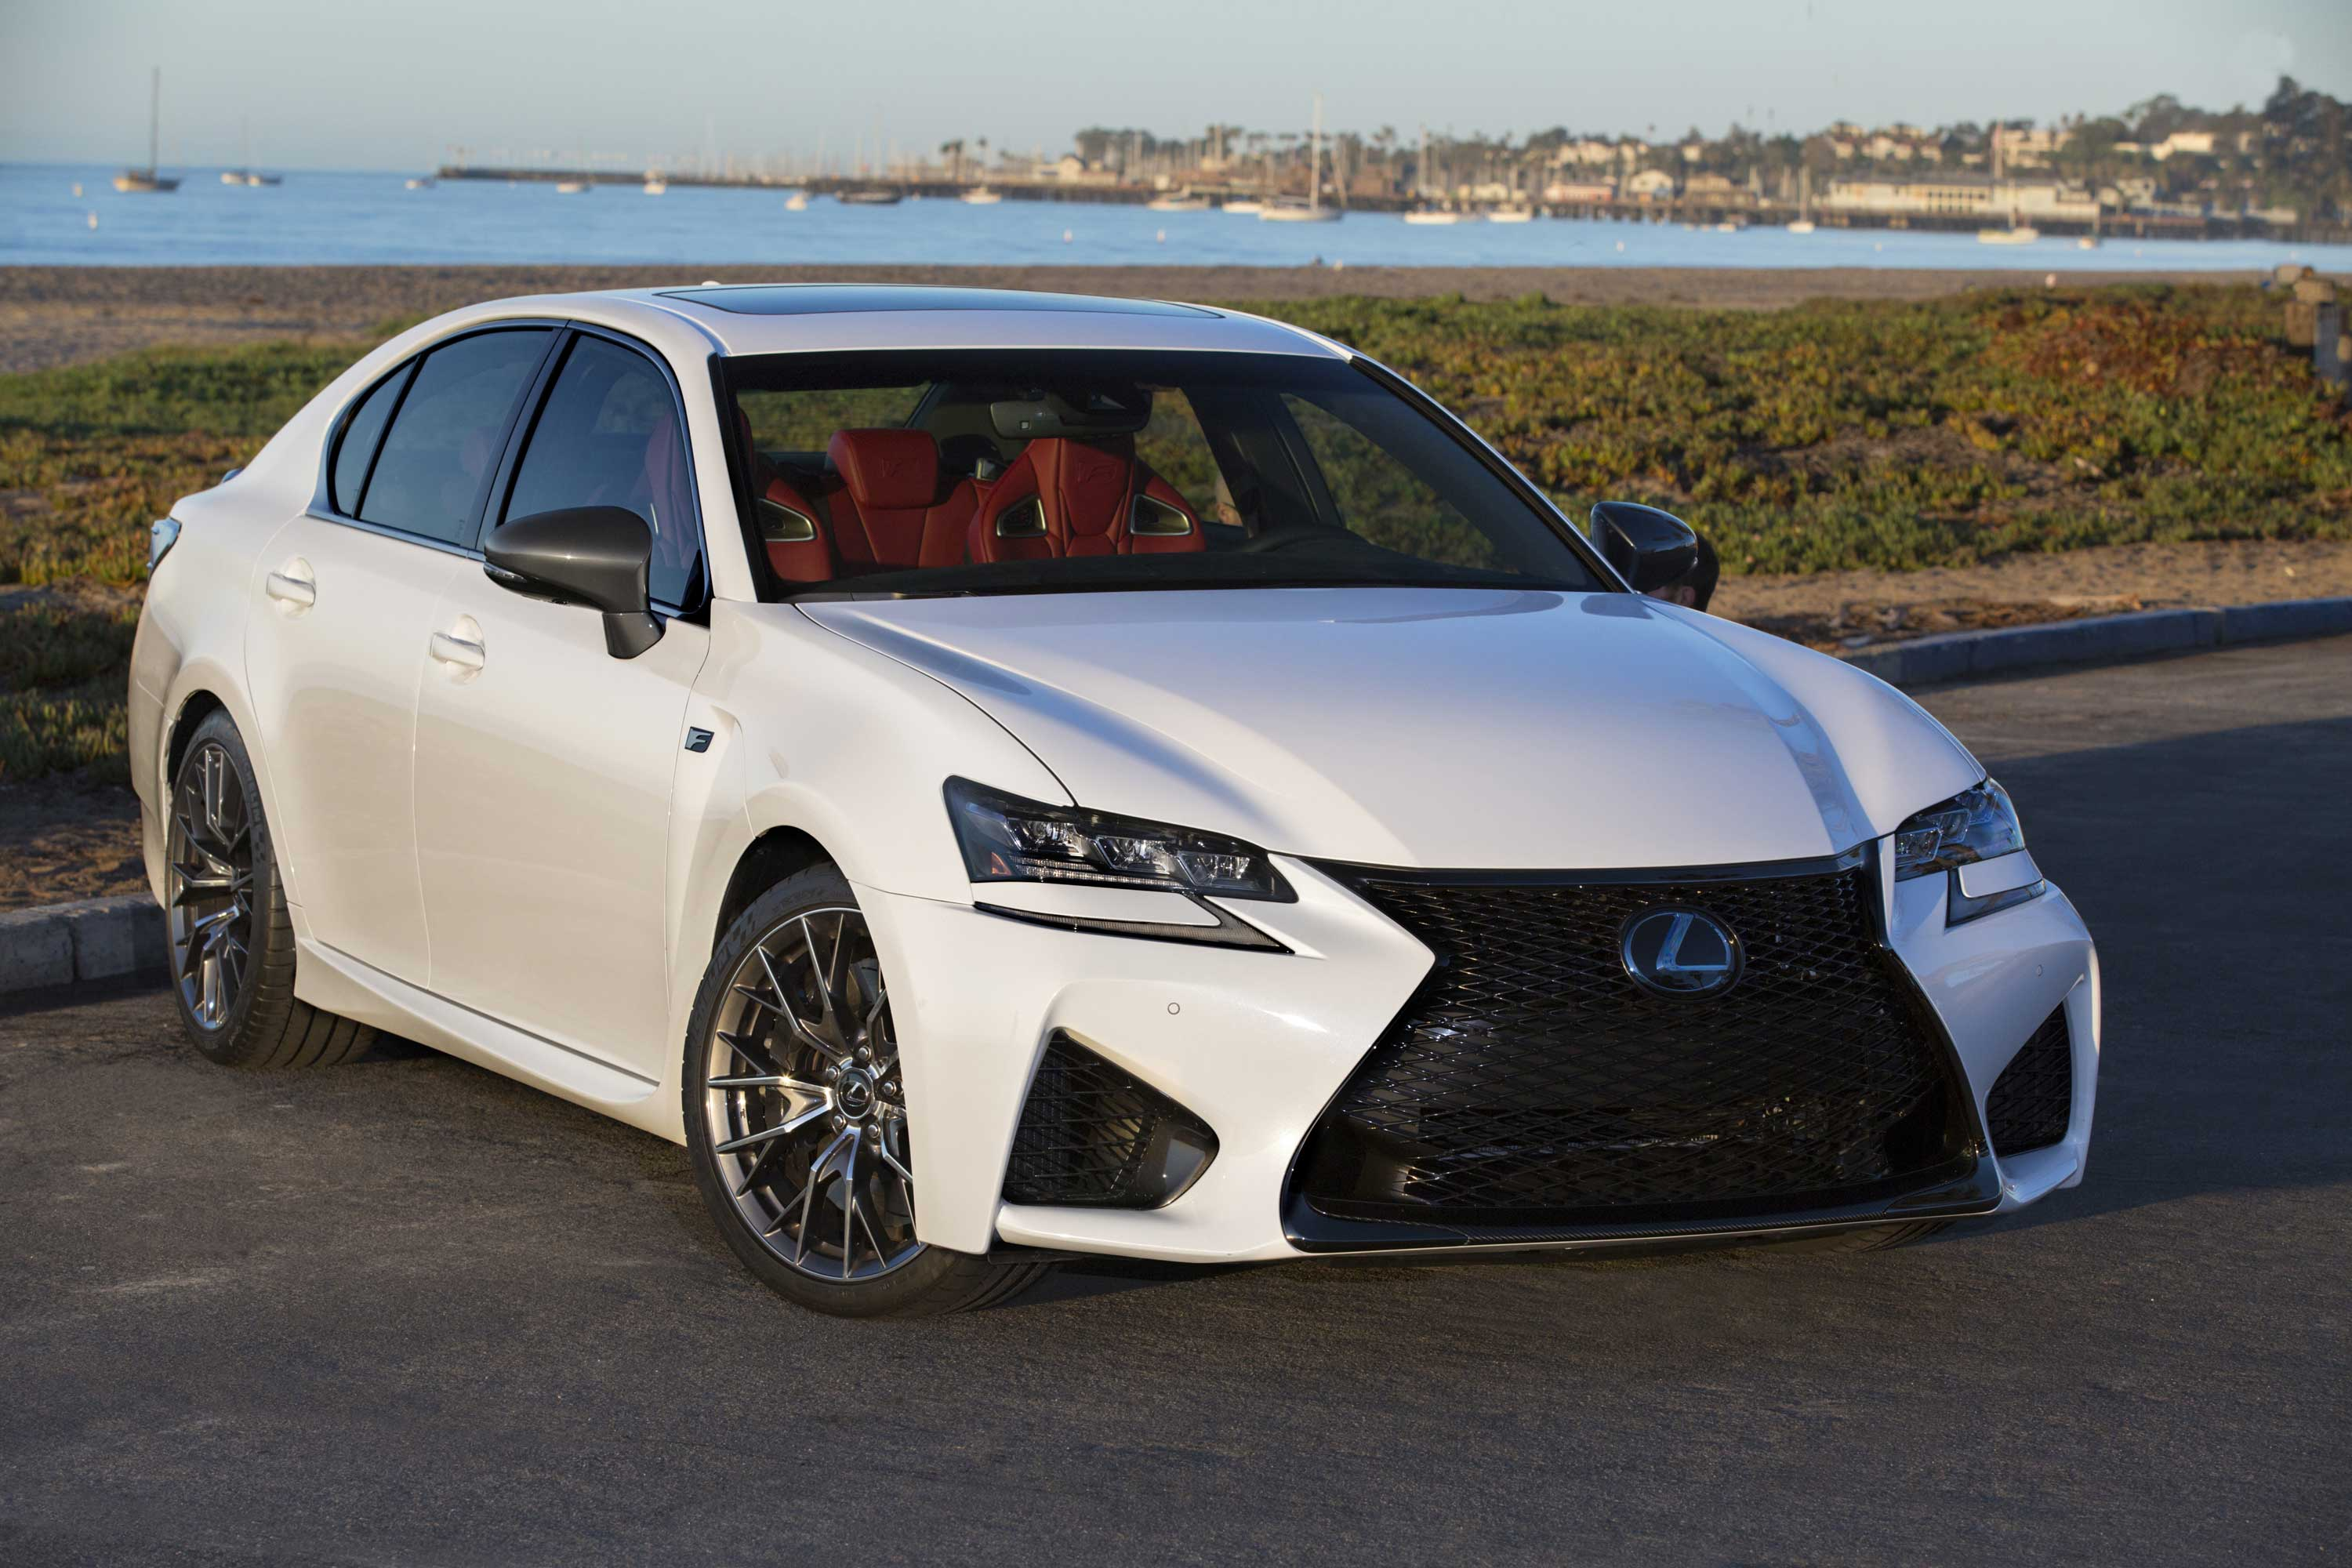 f review lexus fresh sale used sport of savings gs from for best